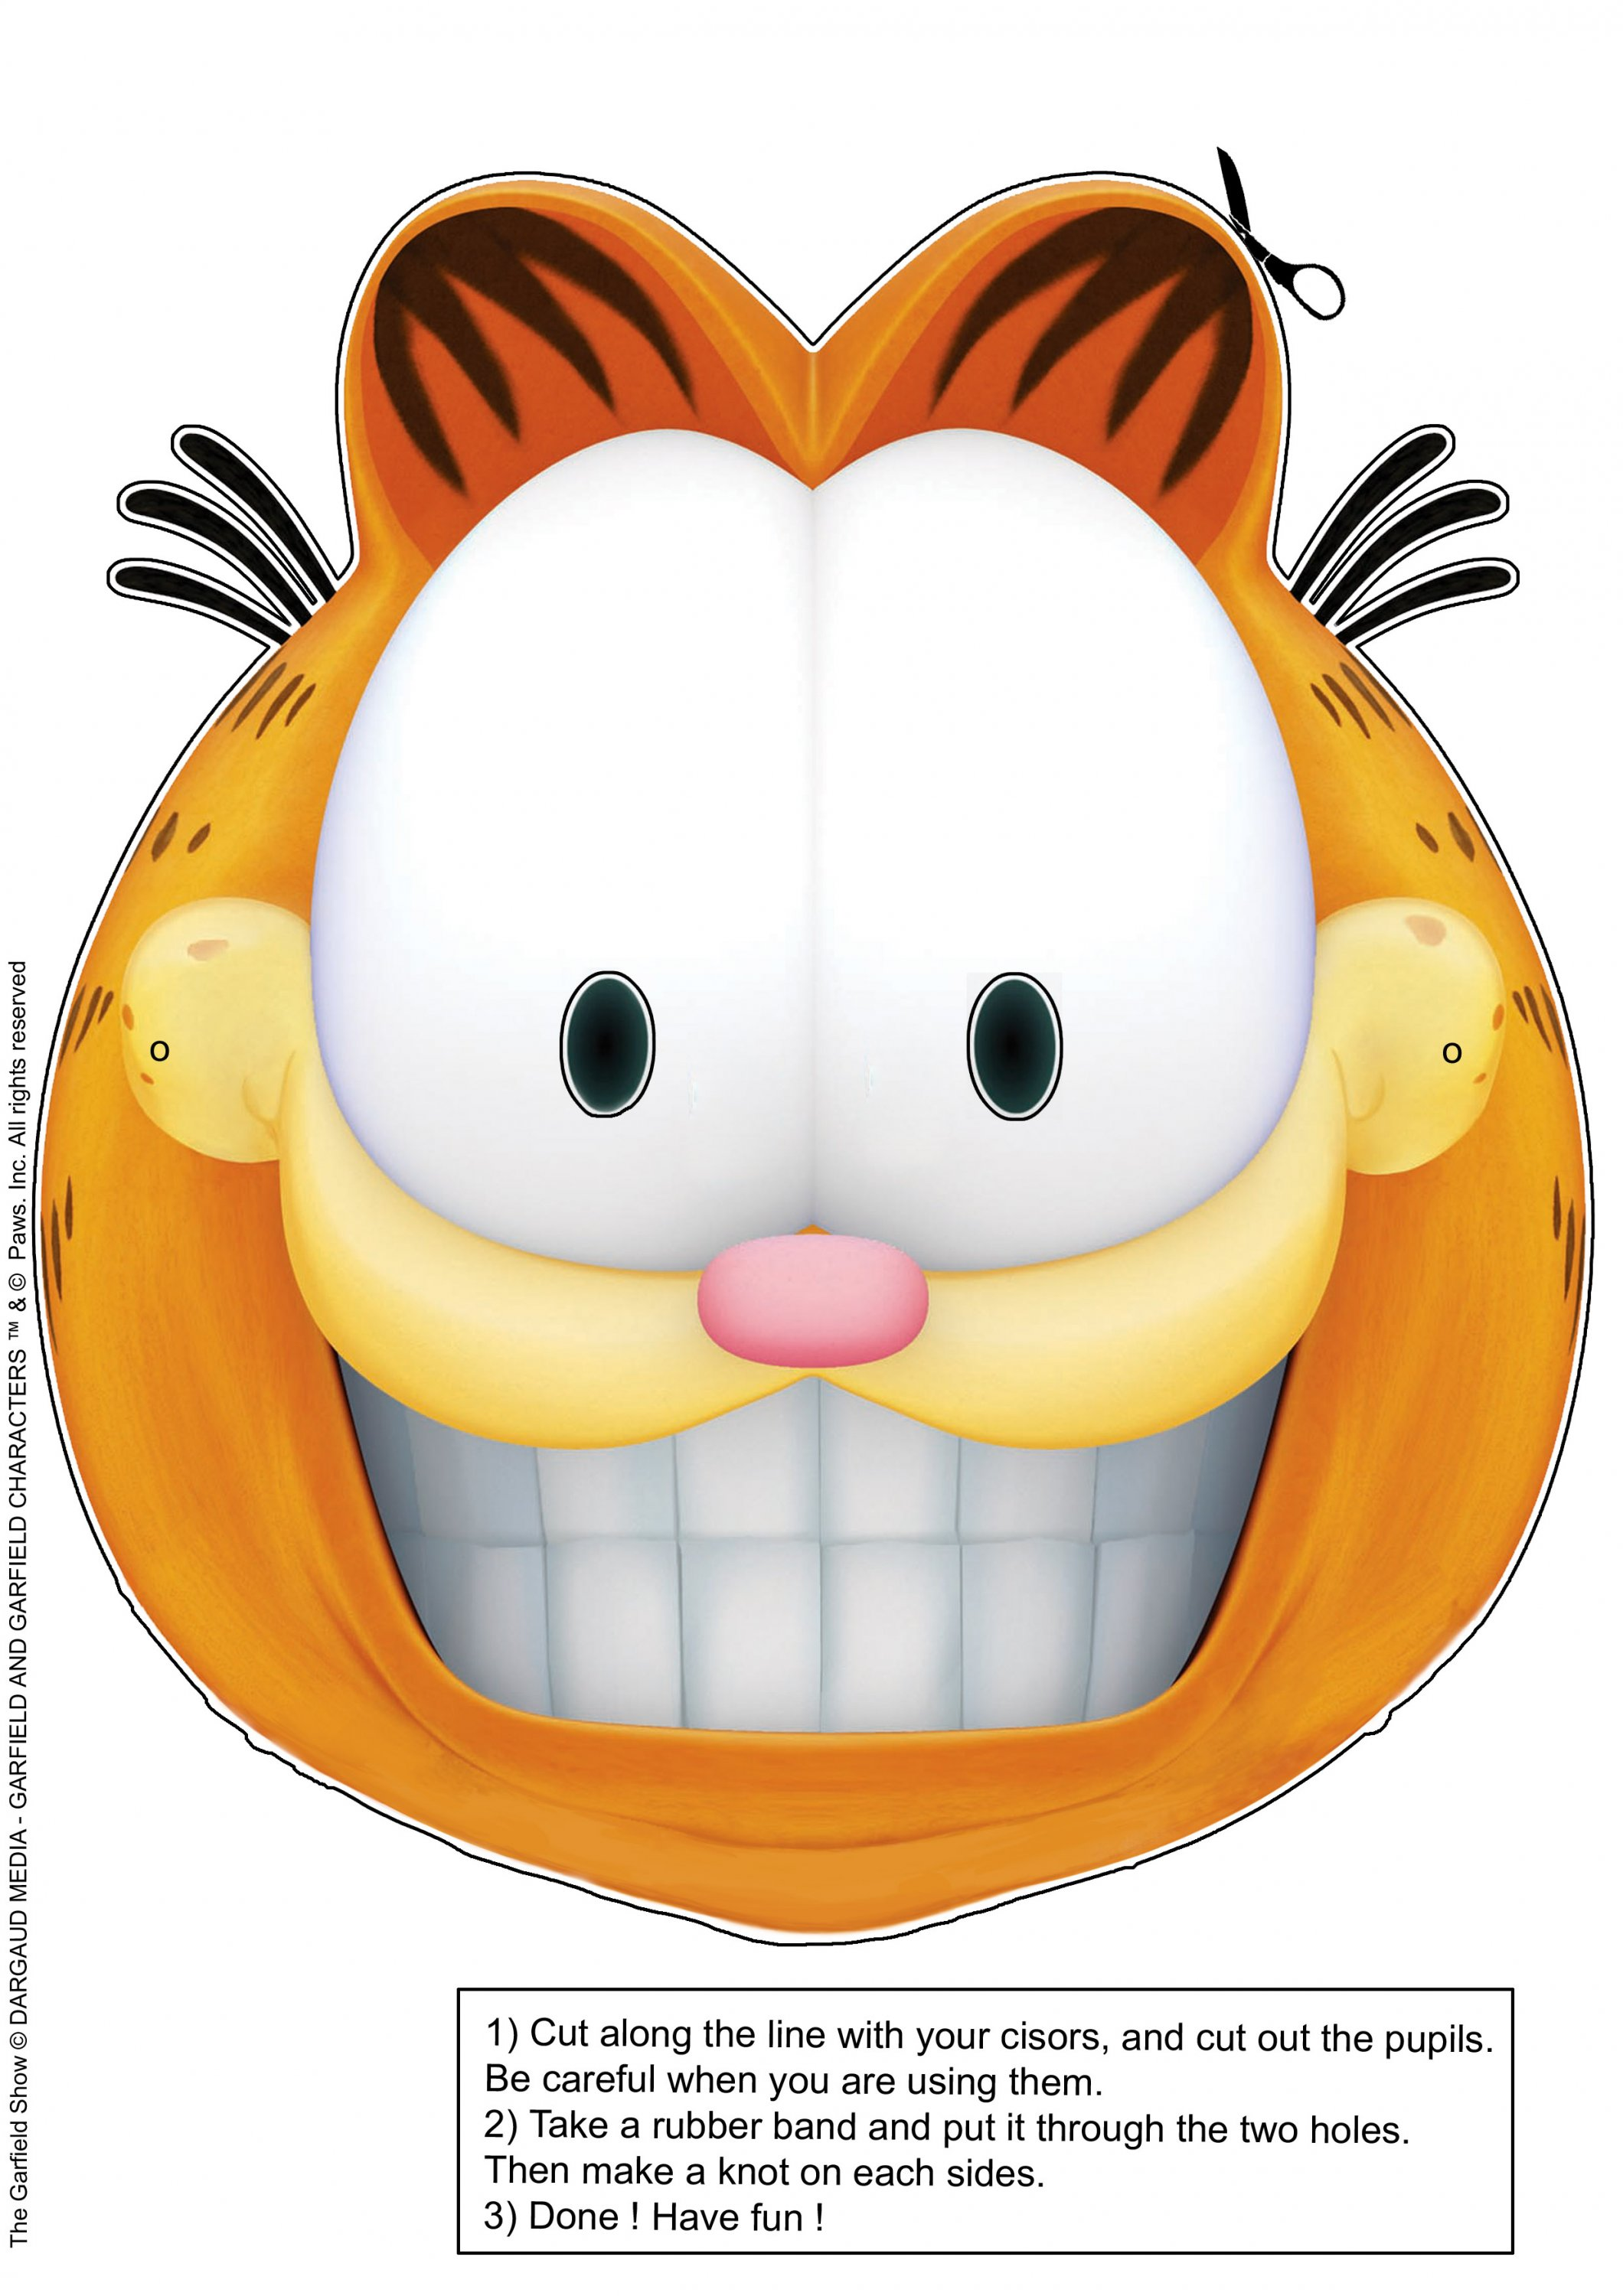 garfield smile